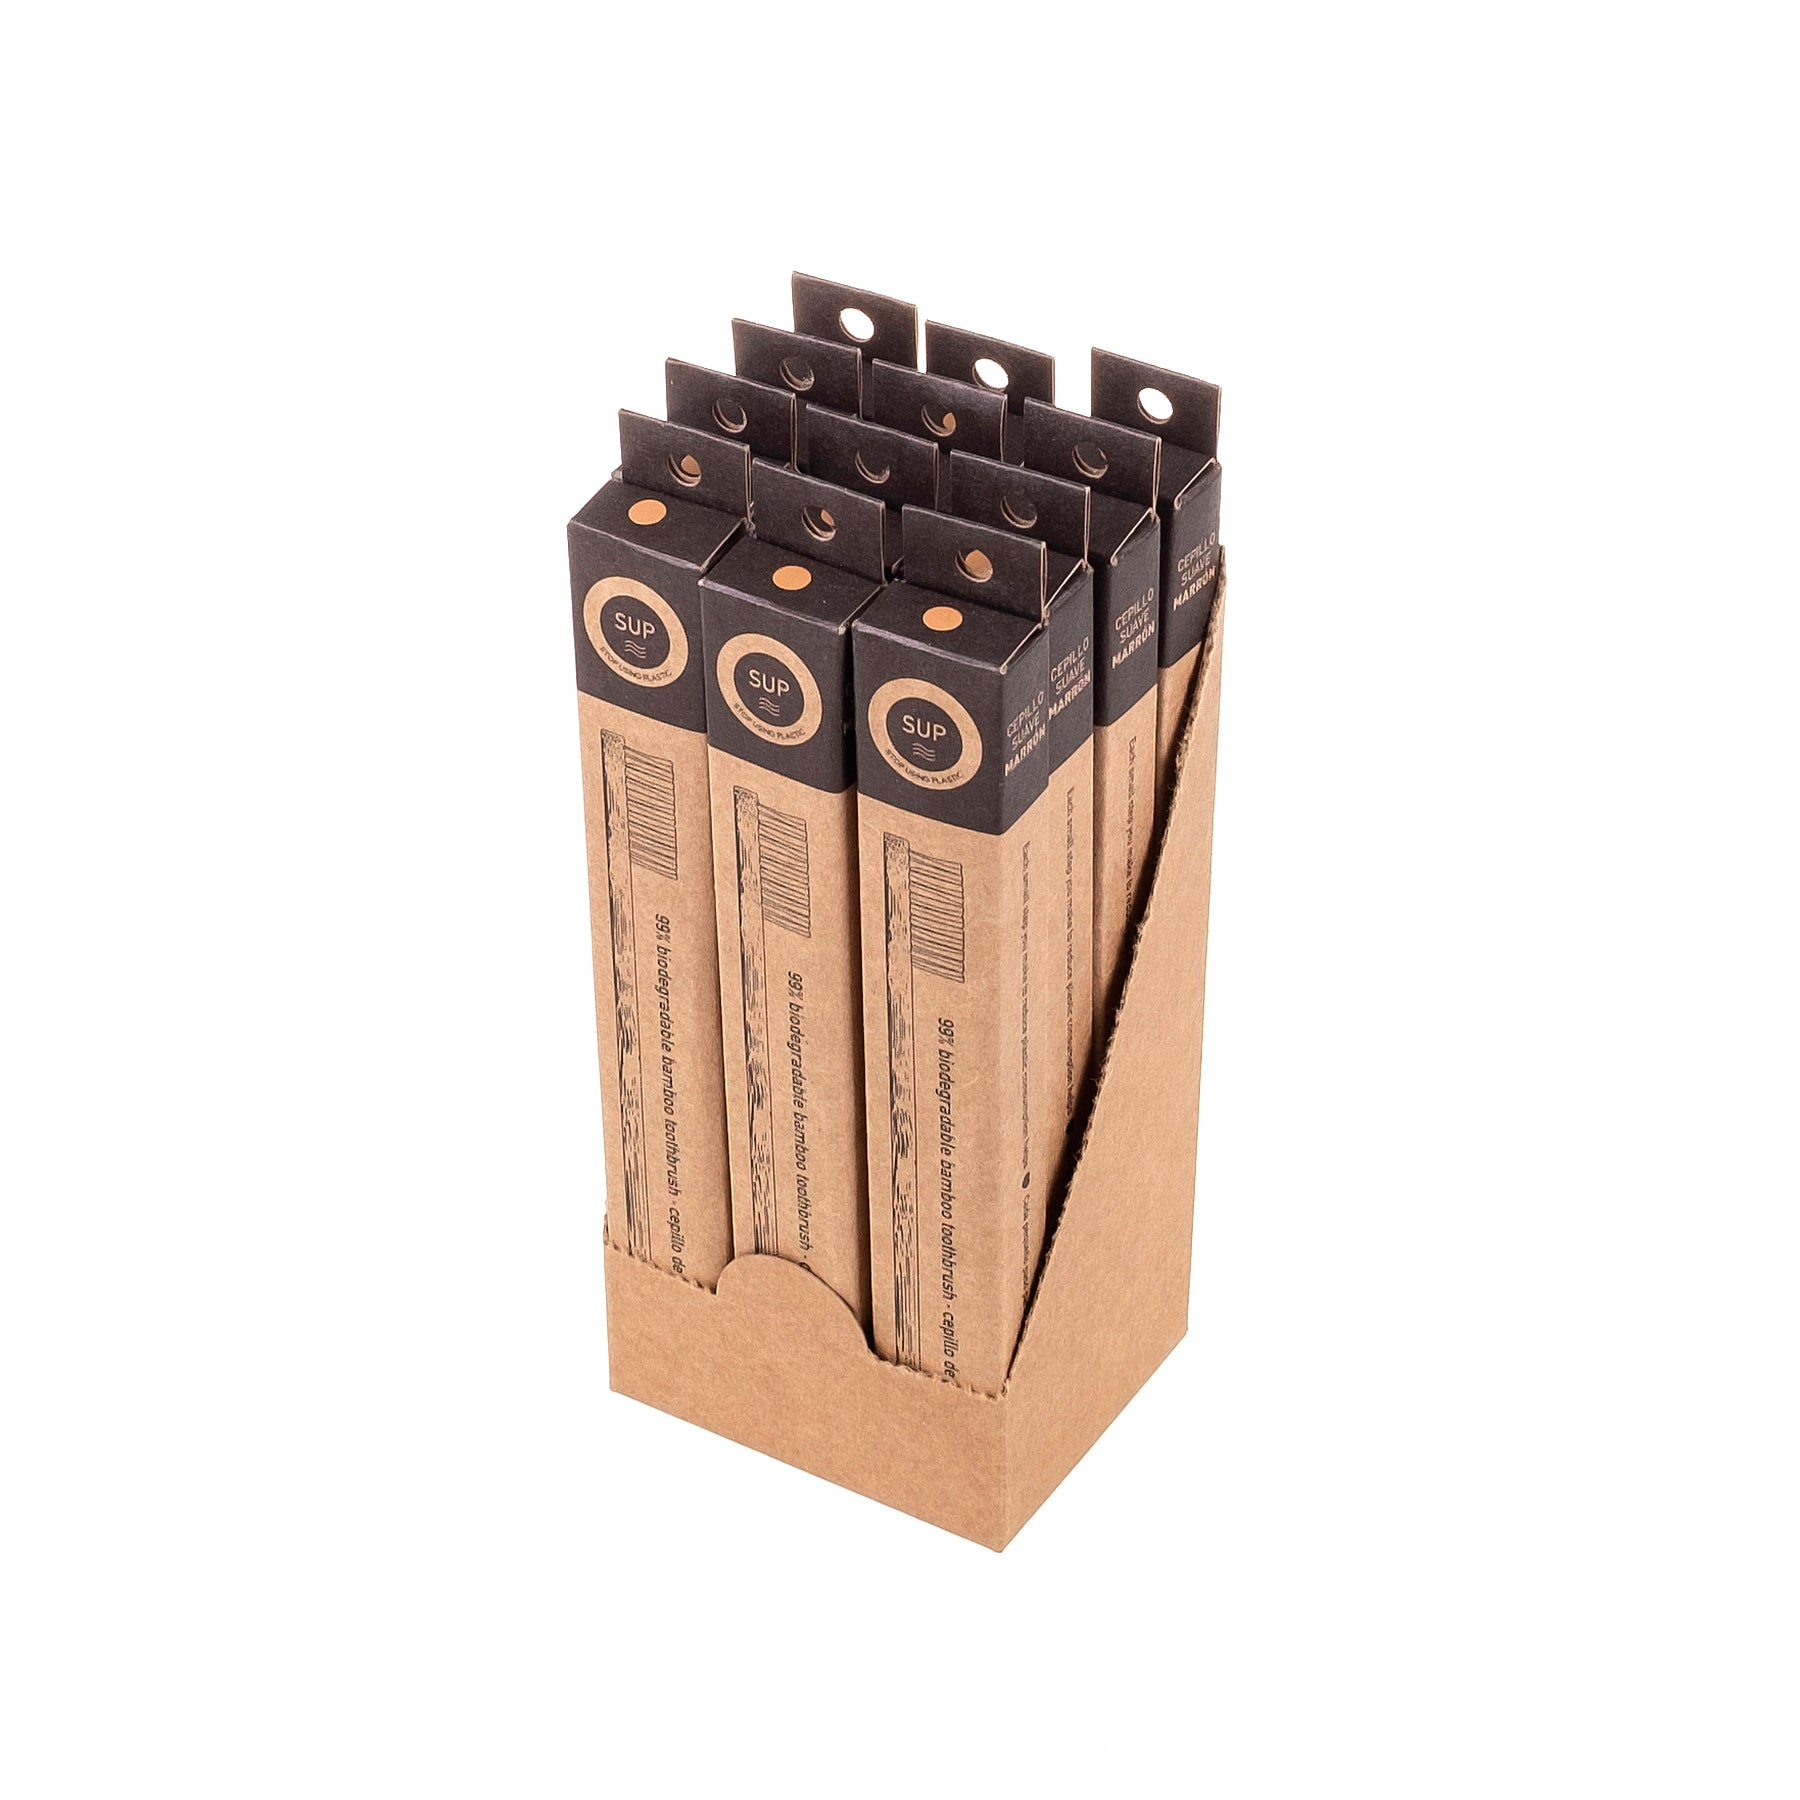 12 Pack Bamboo Toothbrush - Soft Brown Bristle